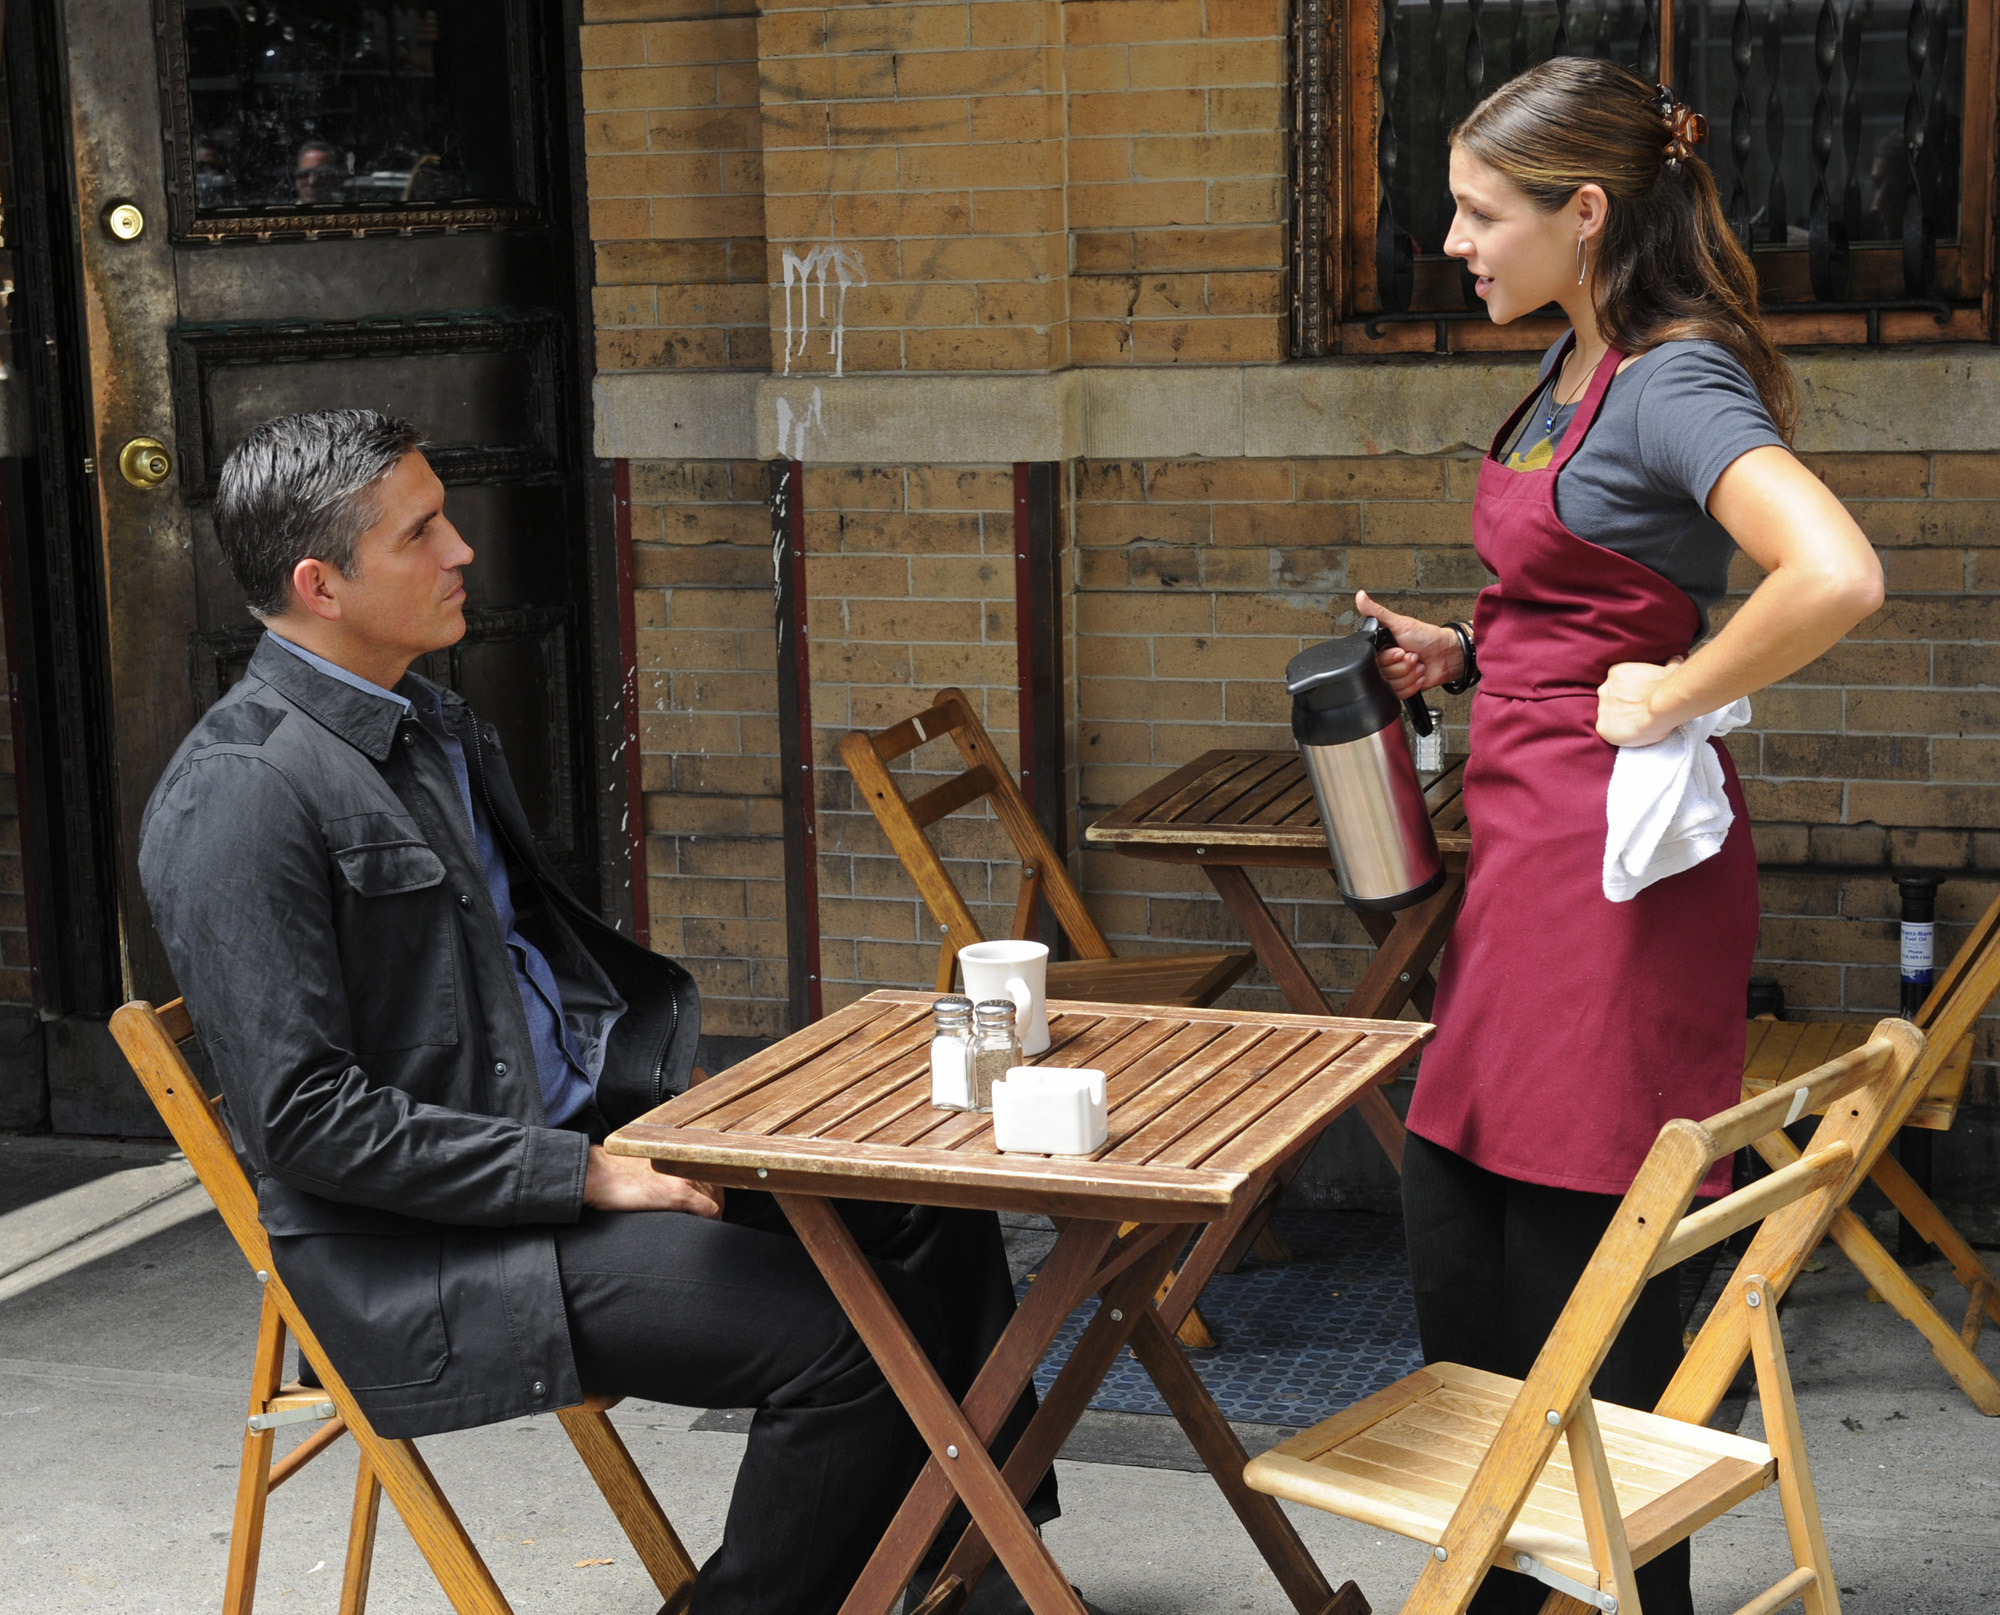 Jim Caviezel and Lili Mirojnick in Person of Interest (2011)